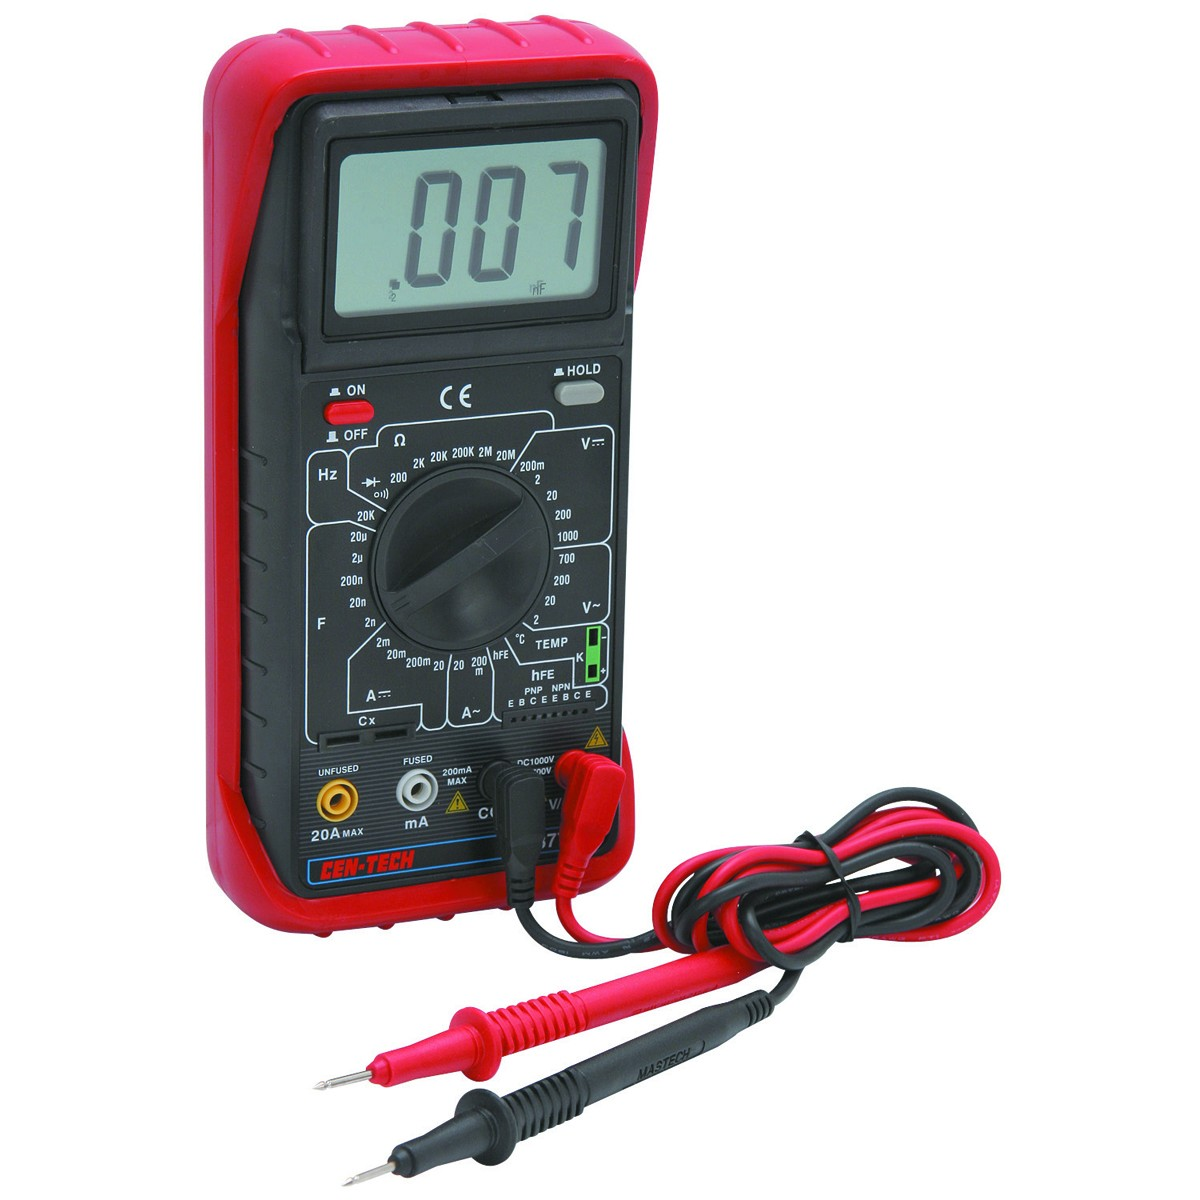 Engineering 44 Lab Blogspot!: Lab 1: Using a Multimeter